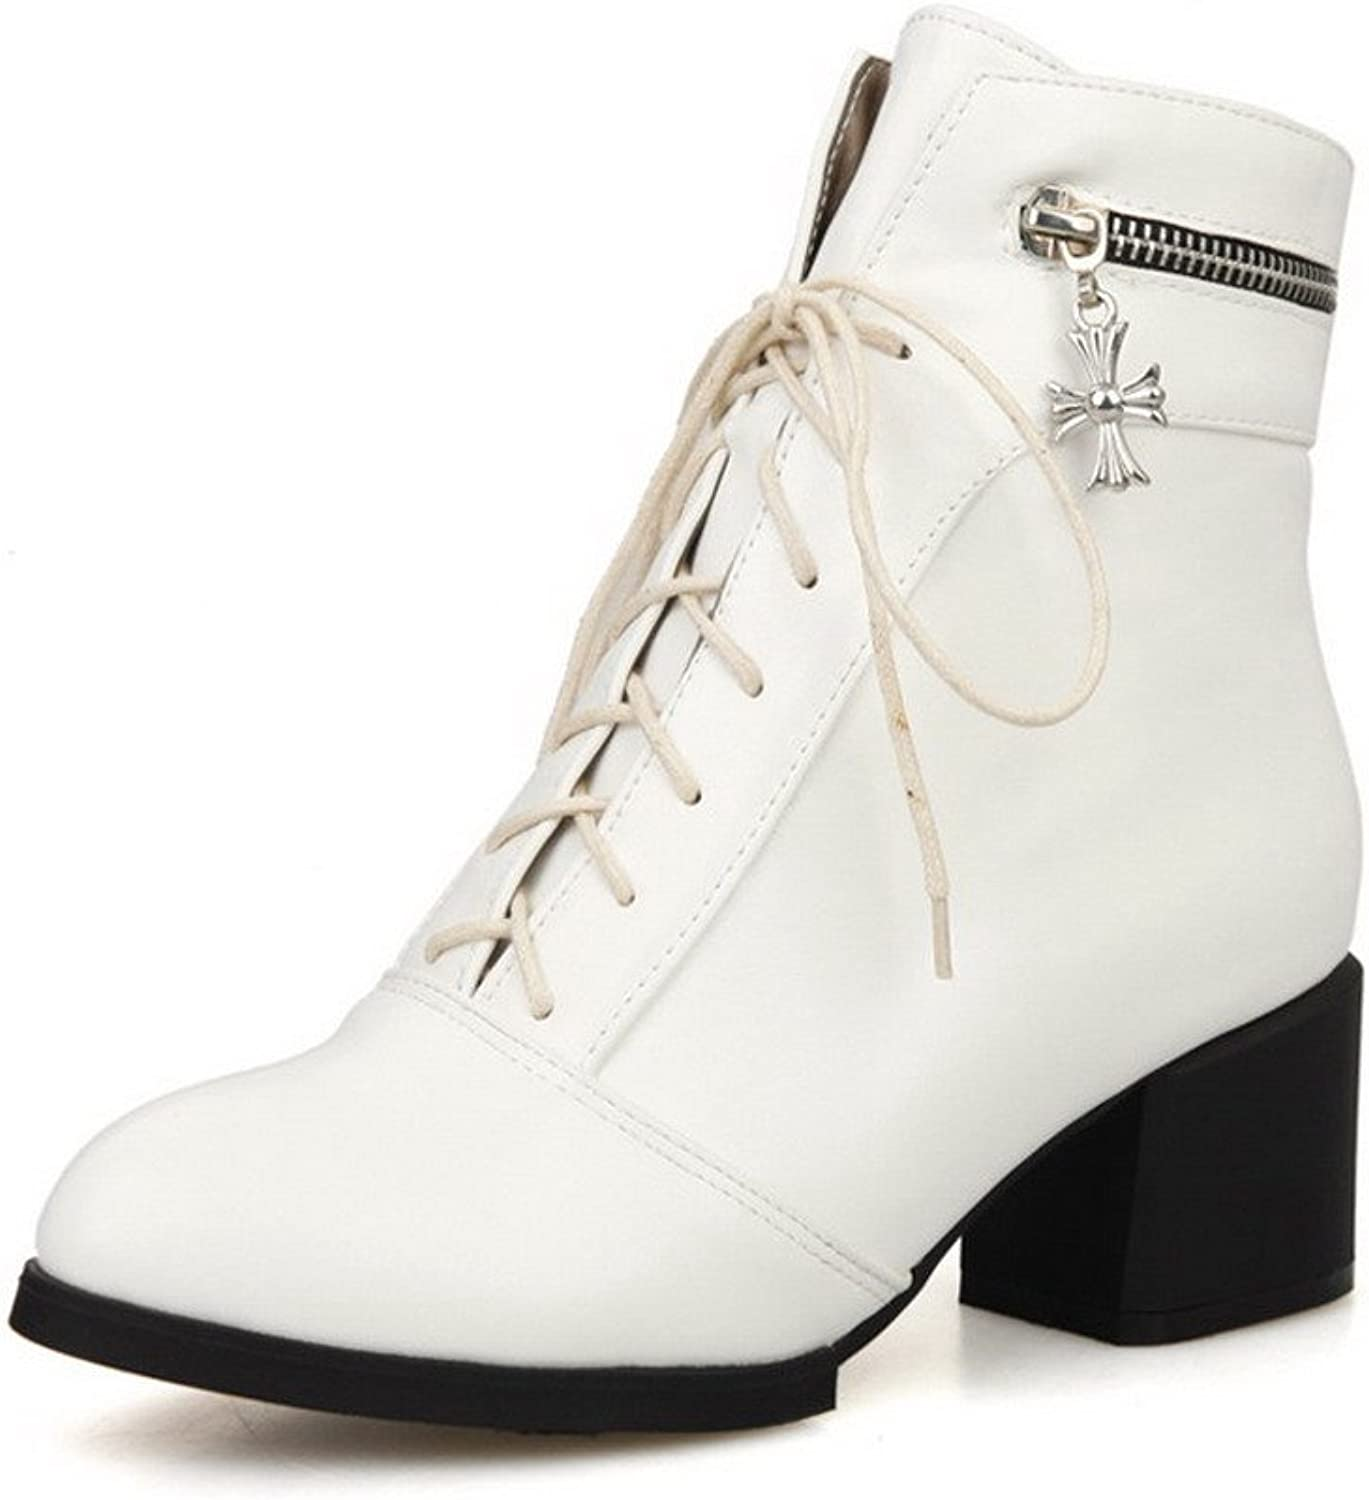 WeiPoot Women's Solid Round Toe Blend Materials PU Low-top Boots